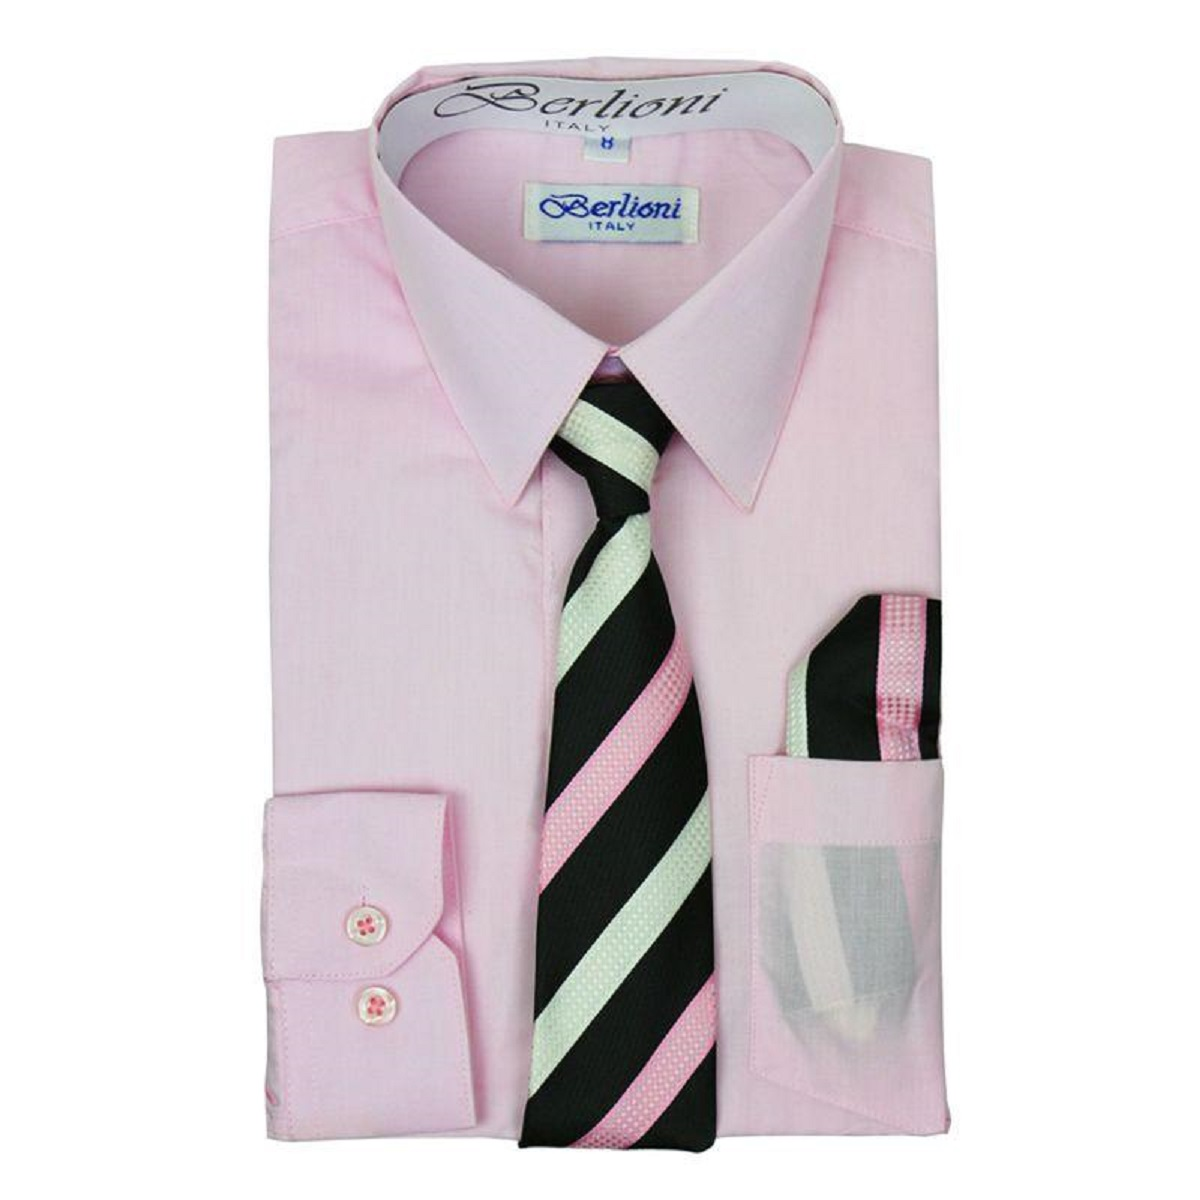 BERLIONI ITALY TODDLERS KIDS BOYS LONG SLEEVE DRESS SHIRT SET WITH TIE /& HANKY